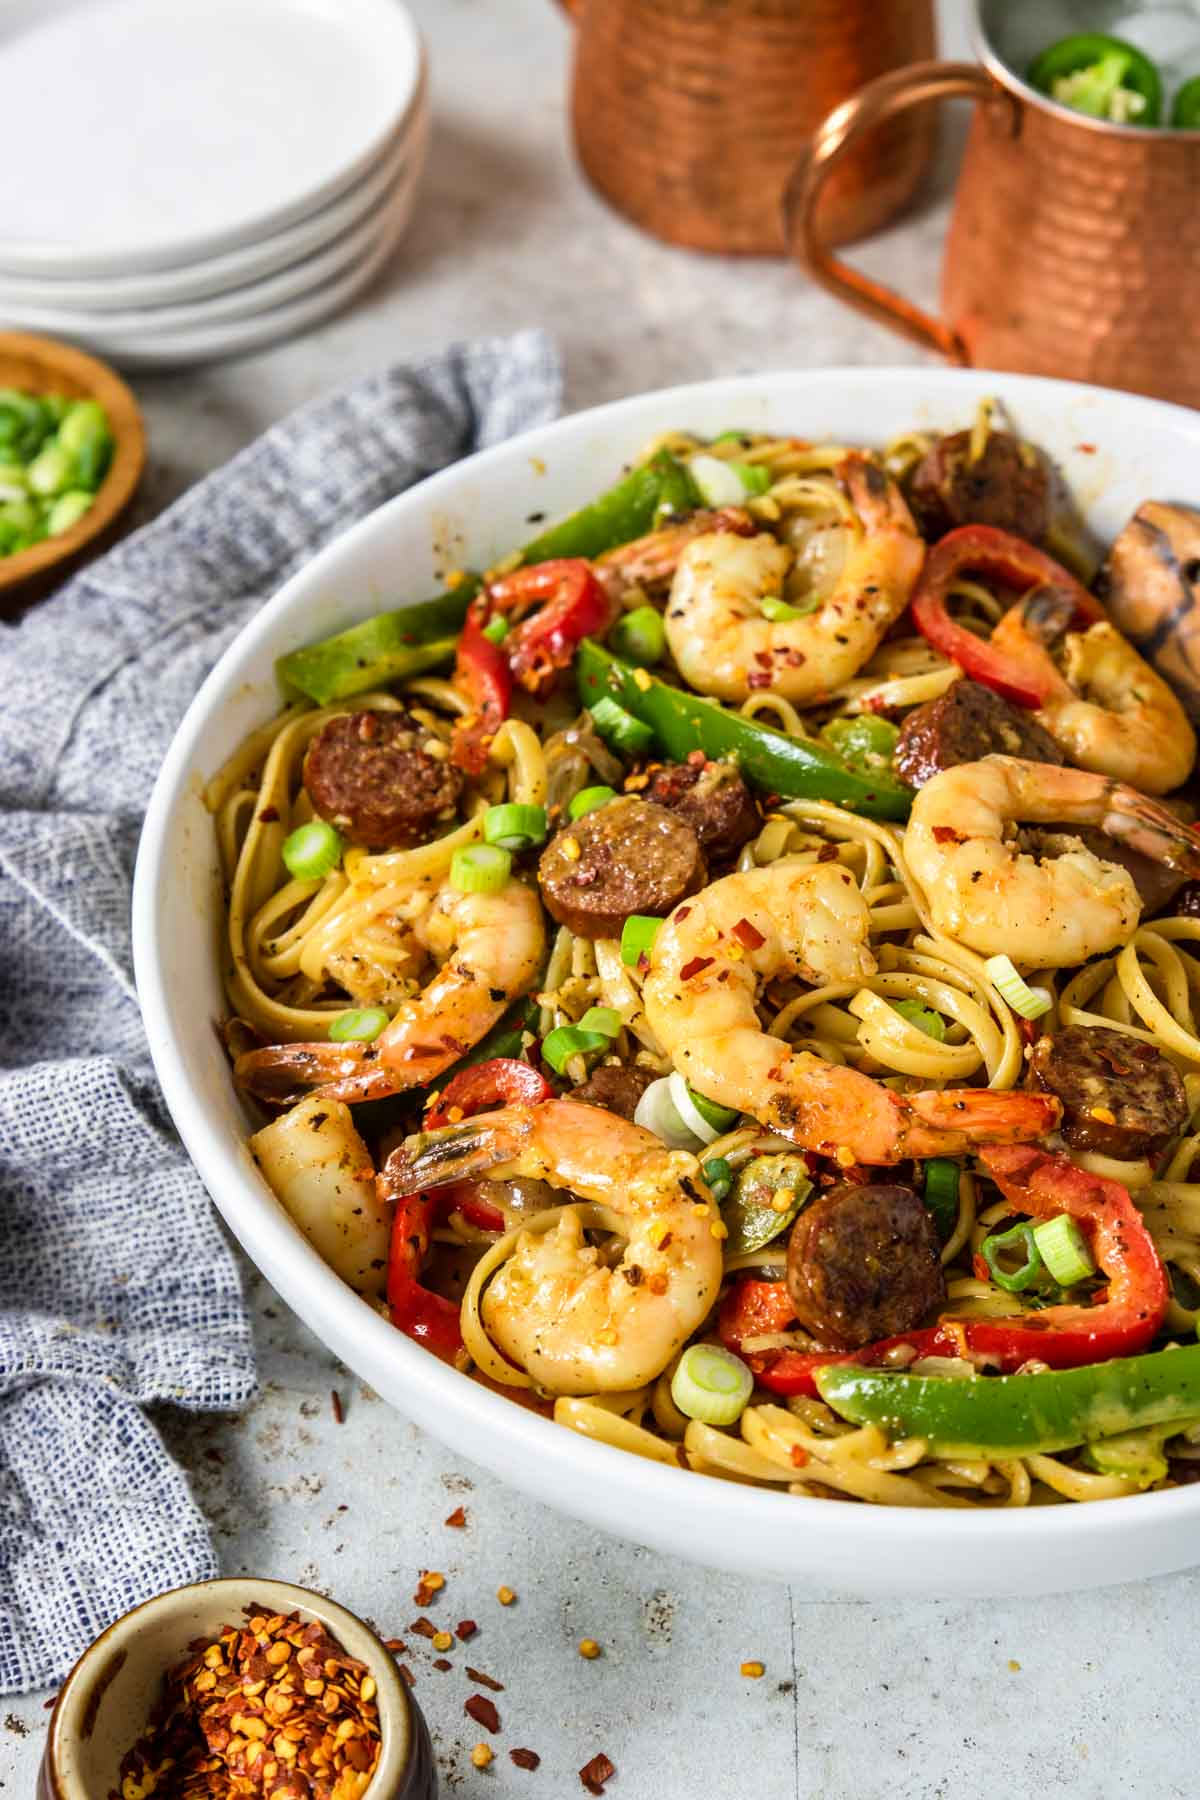 a bowl of pasta with shrimp, sausage and peppers topped with green onions